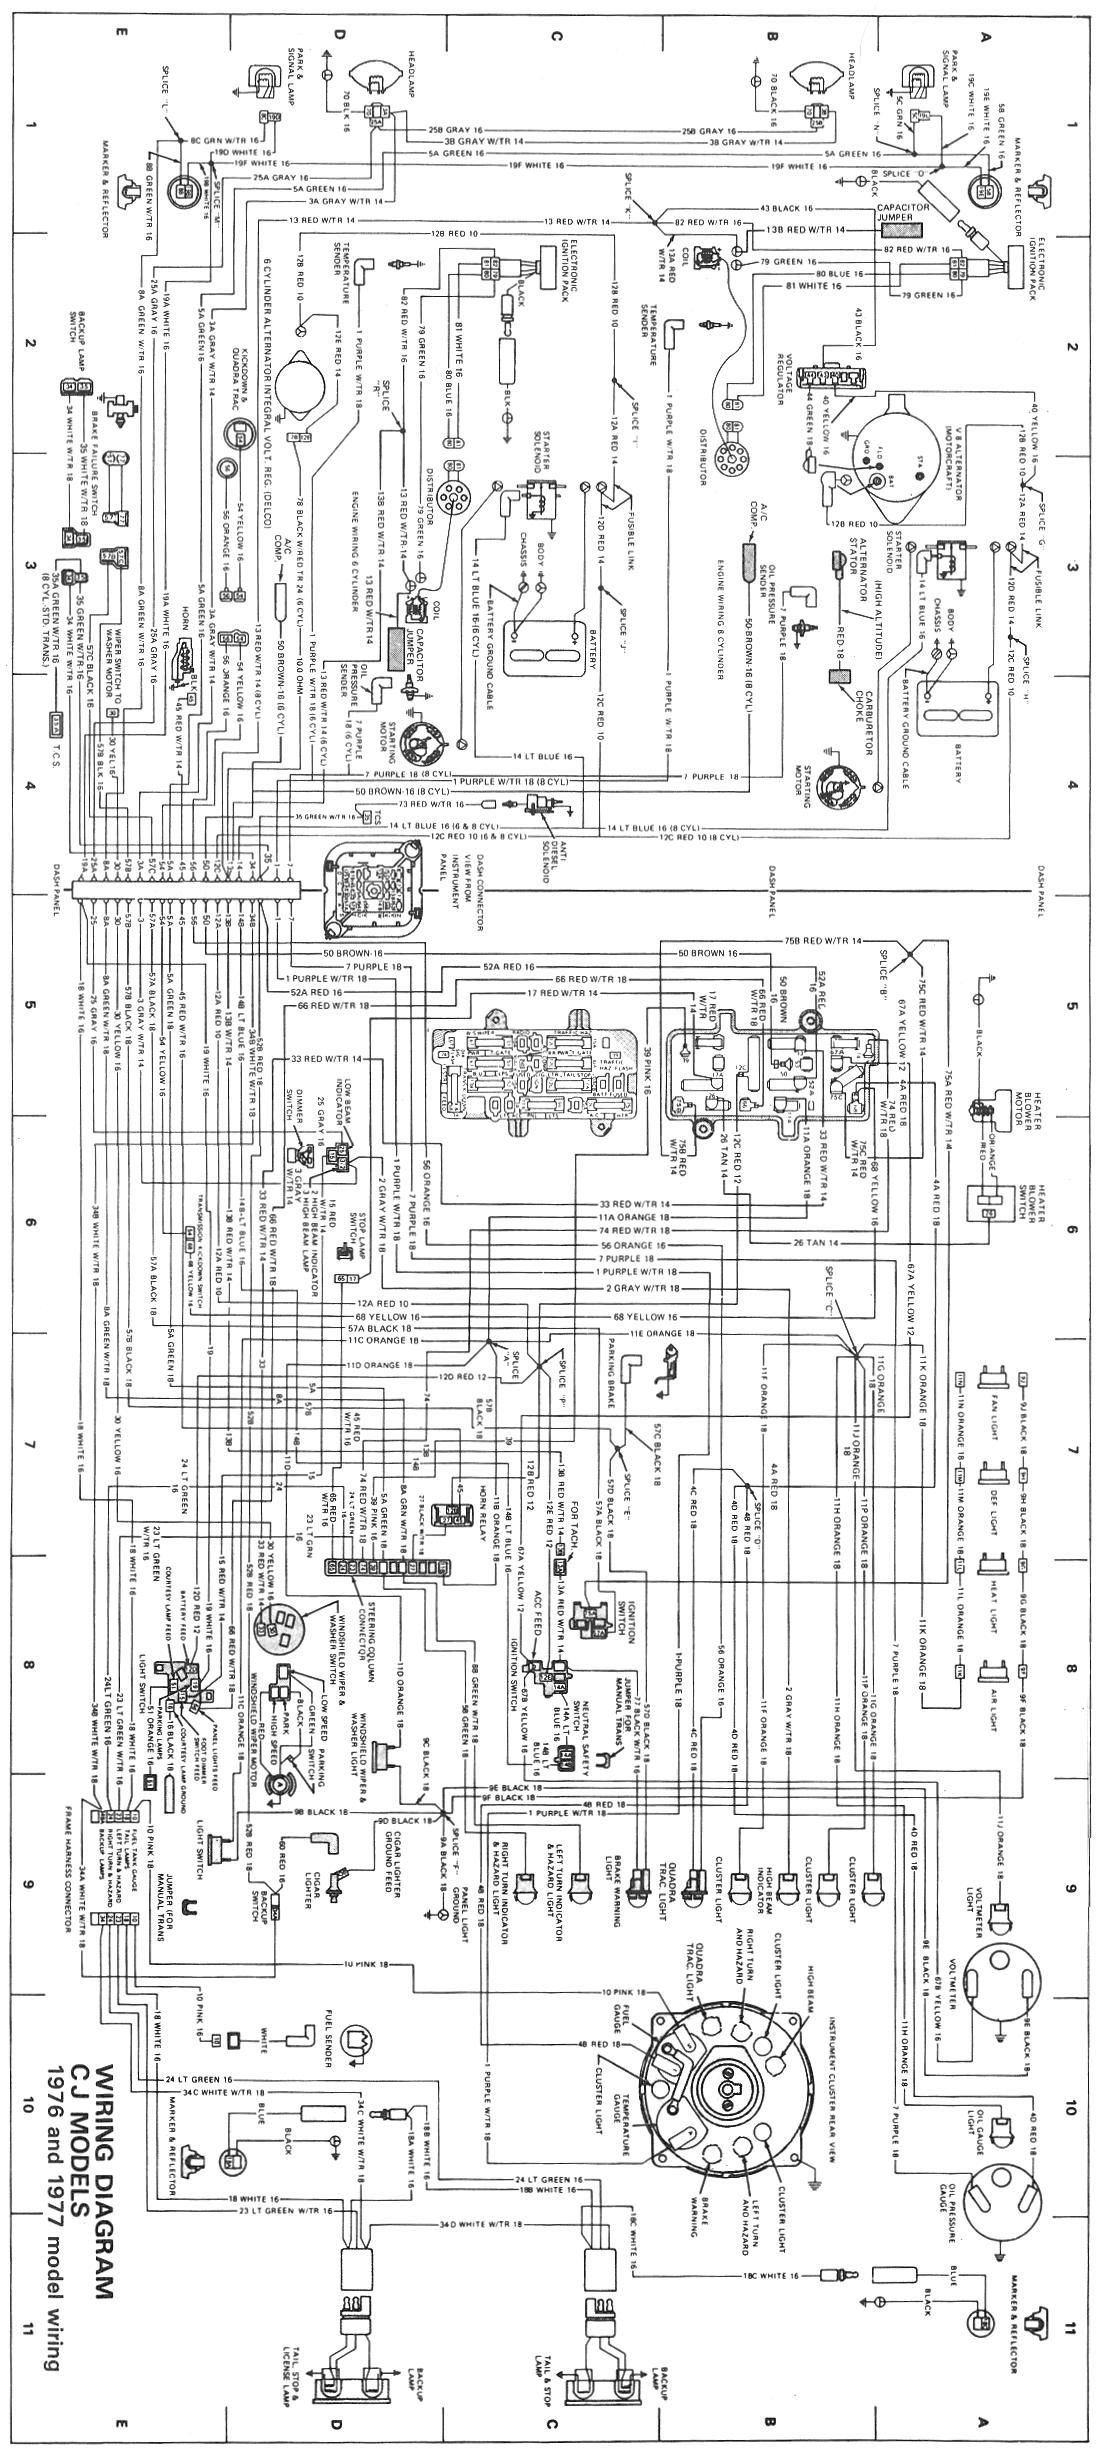 1982 jeep wiring diagram wiring diagram databasewiring diagram for 1982 jeep cj7 wiring diagram gp 1982 [ 1100 x 2459 Pixel ]